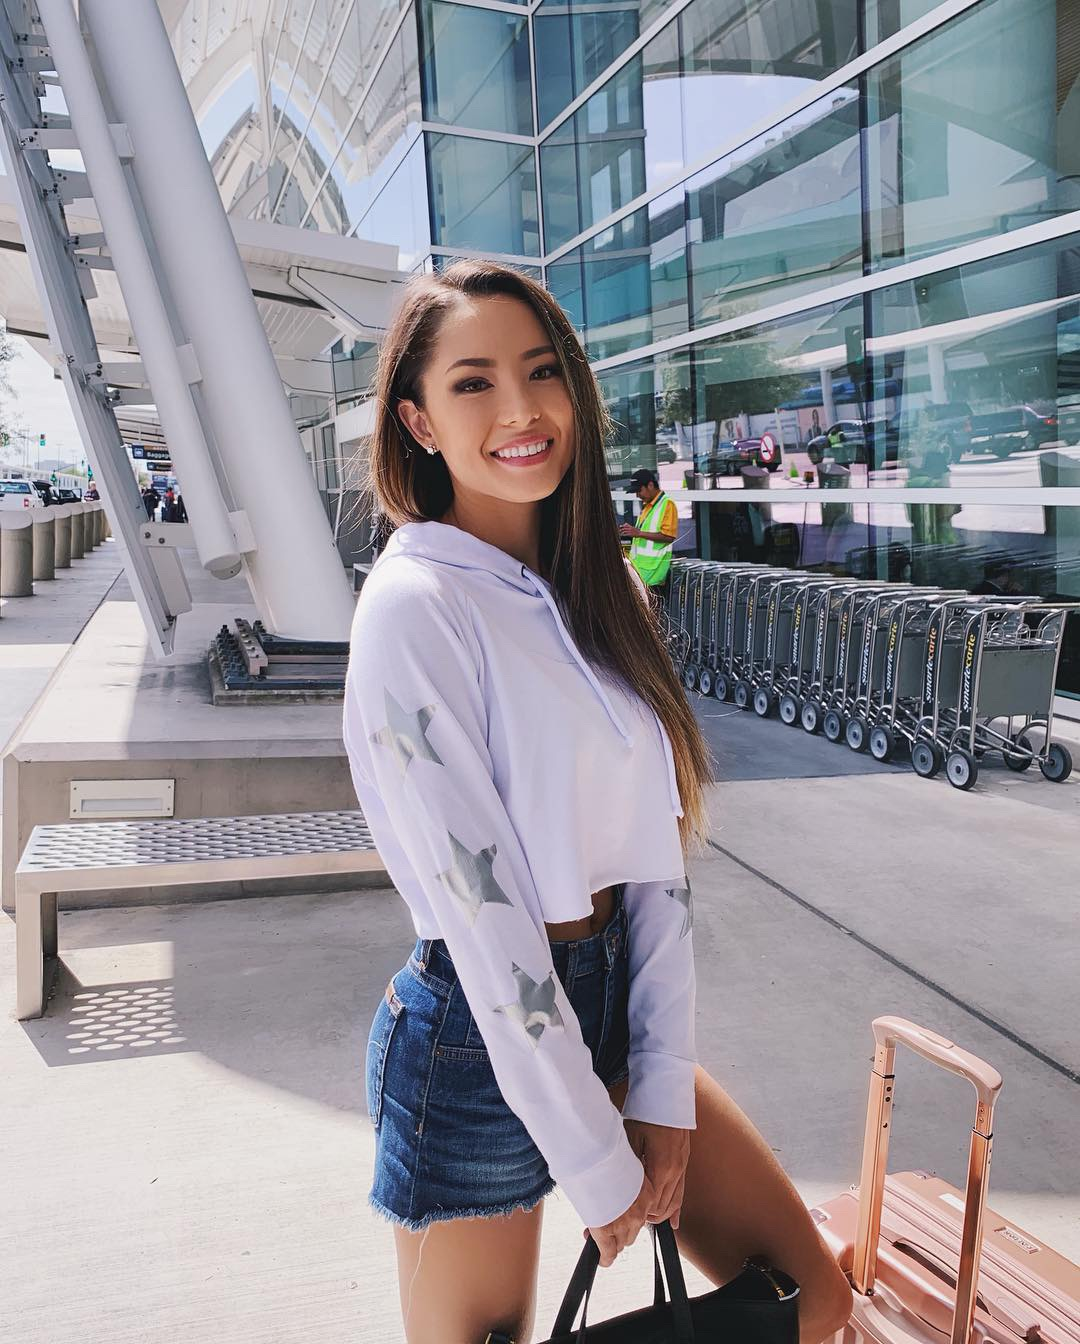 casual airport outfit sweater and jeans